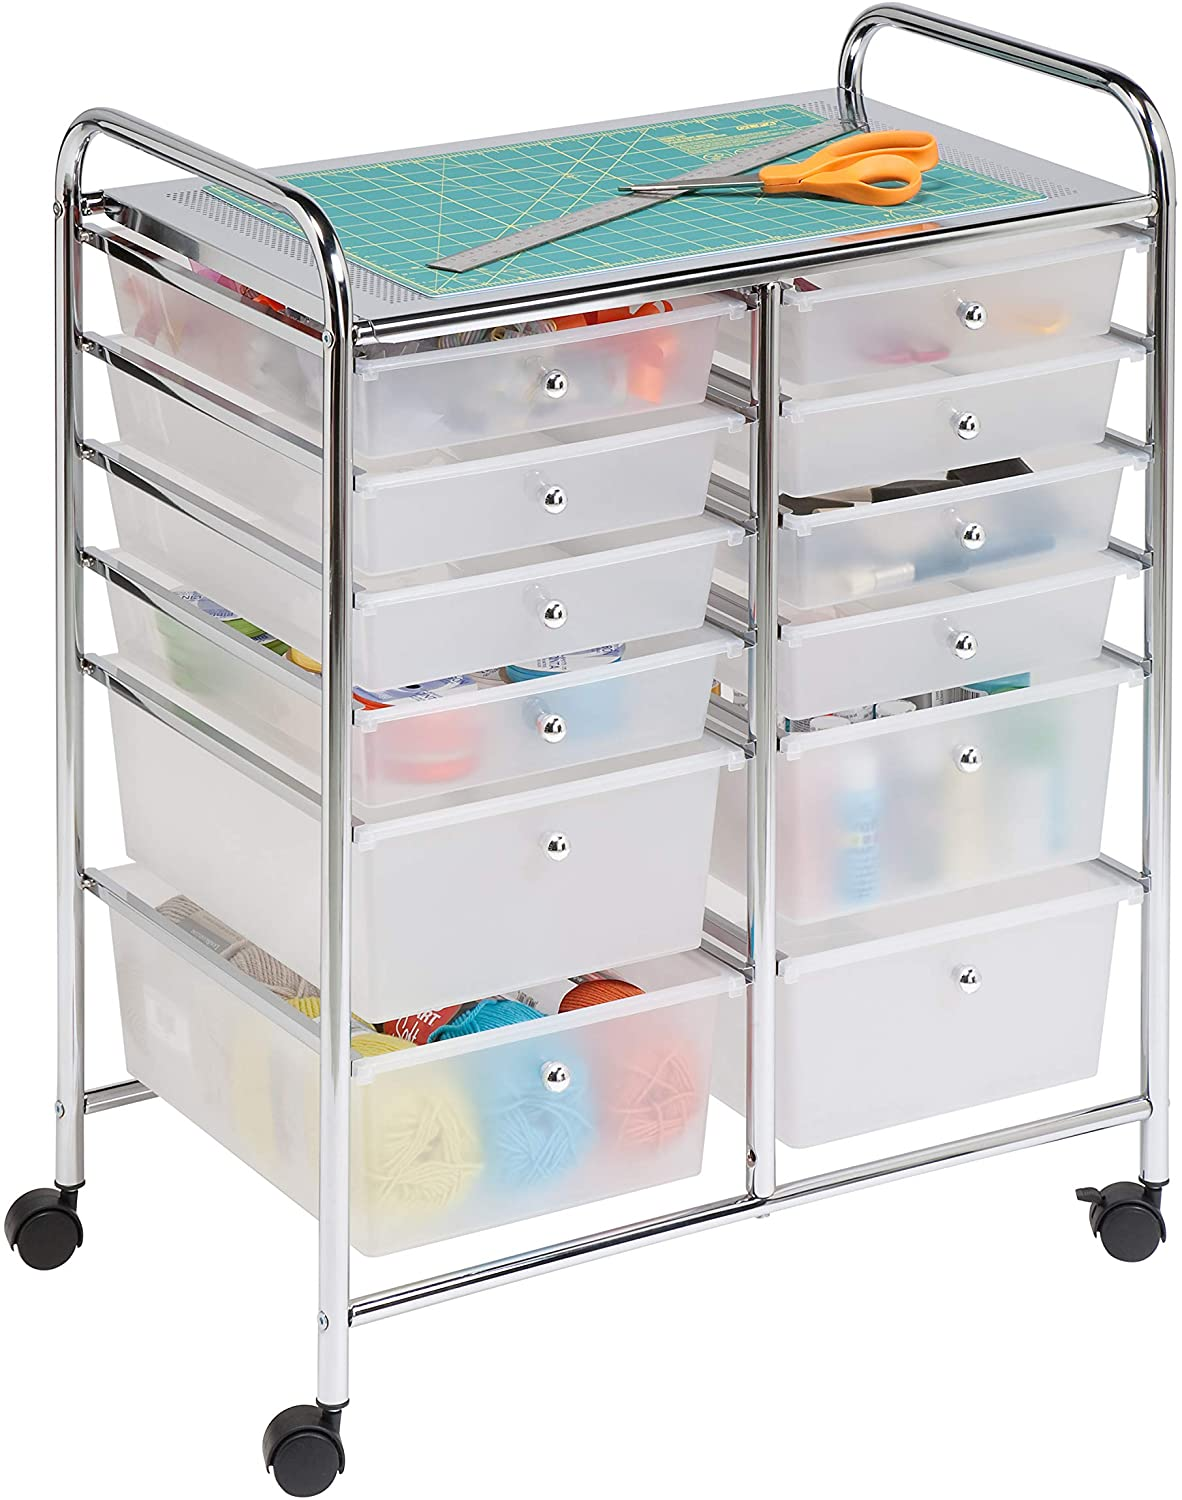 Honey-Can-Do Rolling Storage Cart and Organizer with 12 Plastic Drawers: Arts, Crafts & Sewing